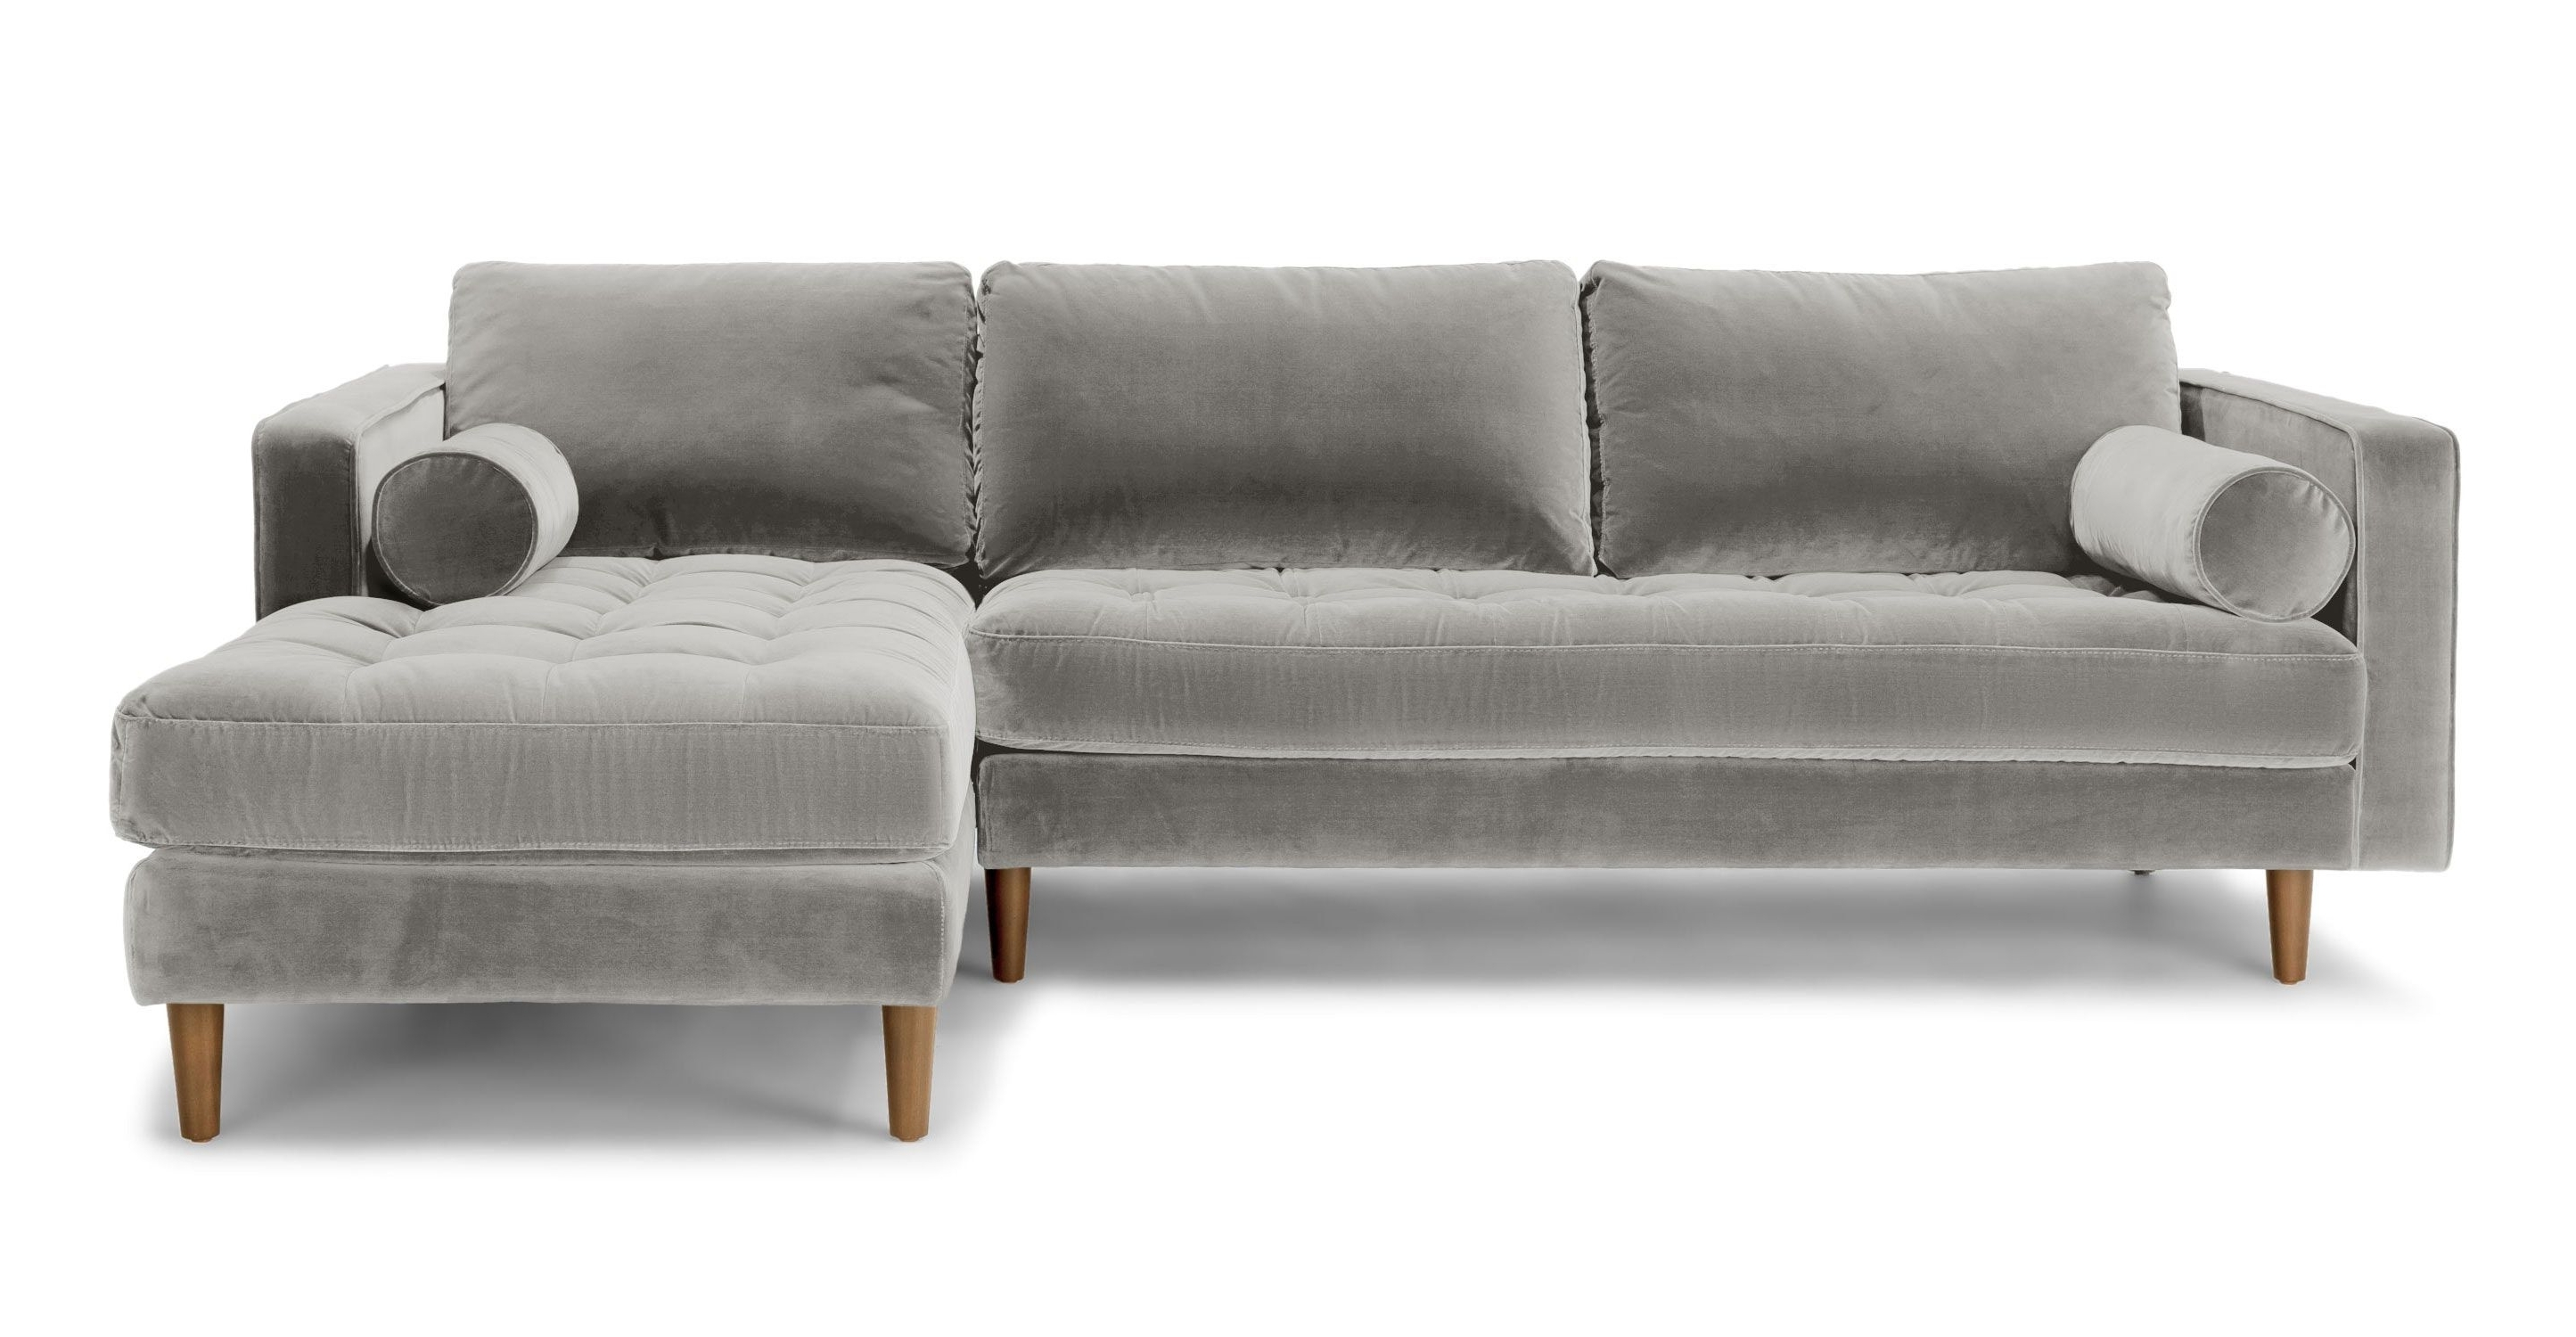 Abbieht Chaise Sectional Sofa With Large Cushionsengland Ivy Inside Well Known Regina Sectional Sofas (View 6 of 15)